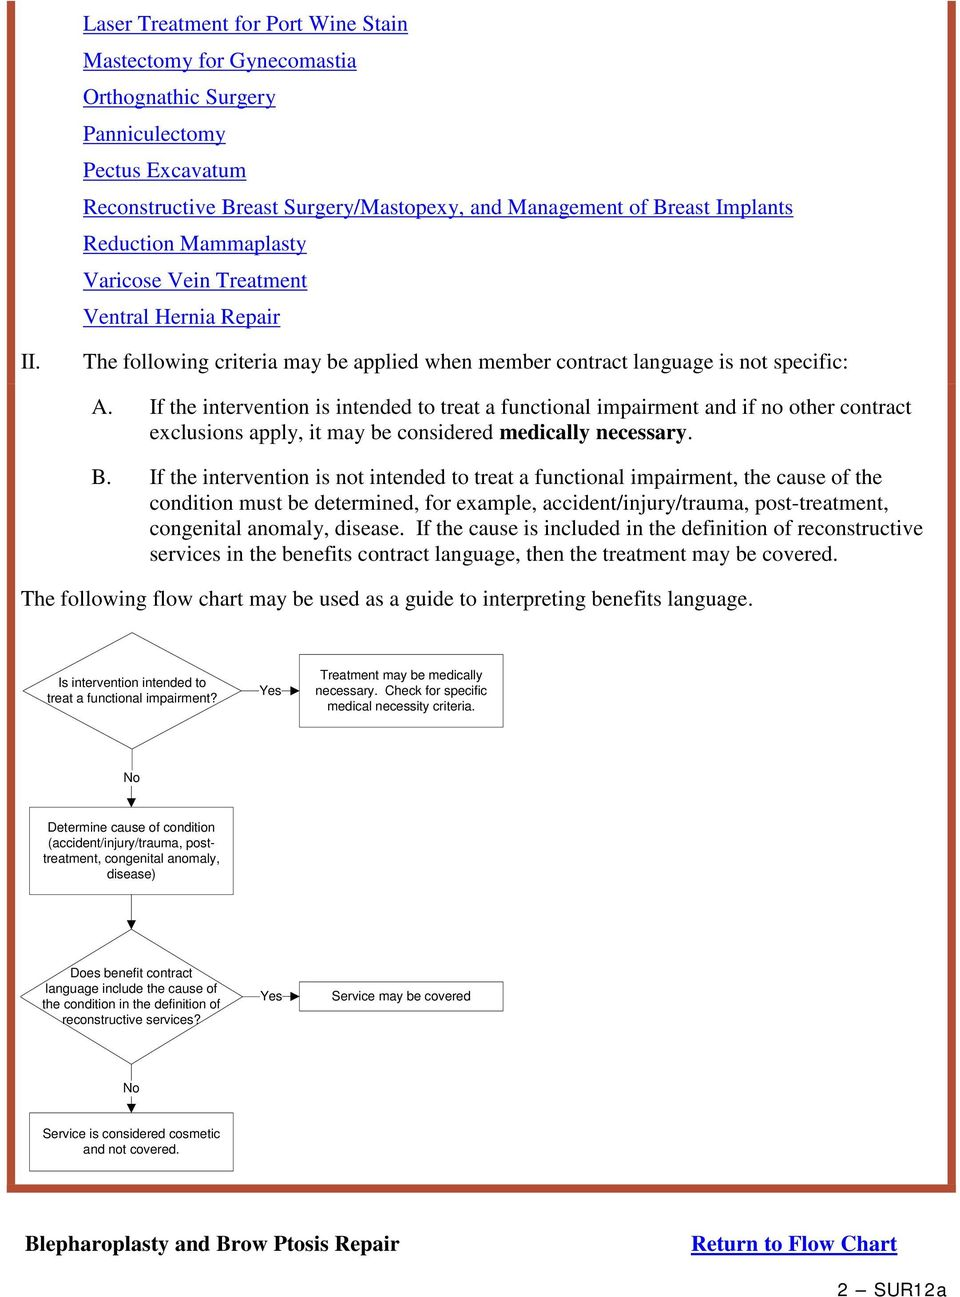 If the intervention is intended to treat a functional impairment and if no other contract exclusions apply, it may be considered medically necessary. B.